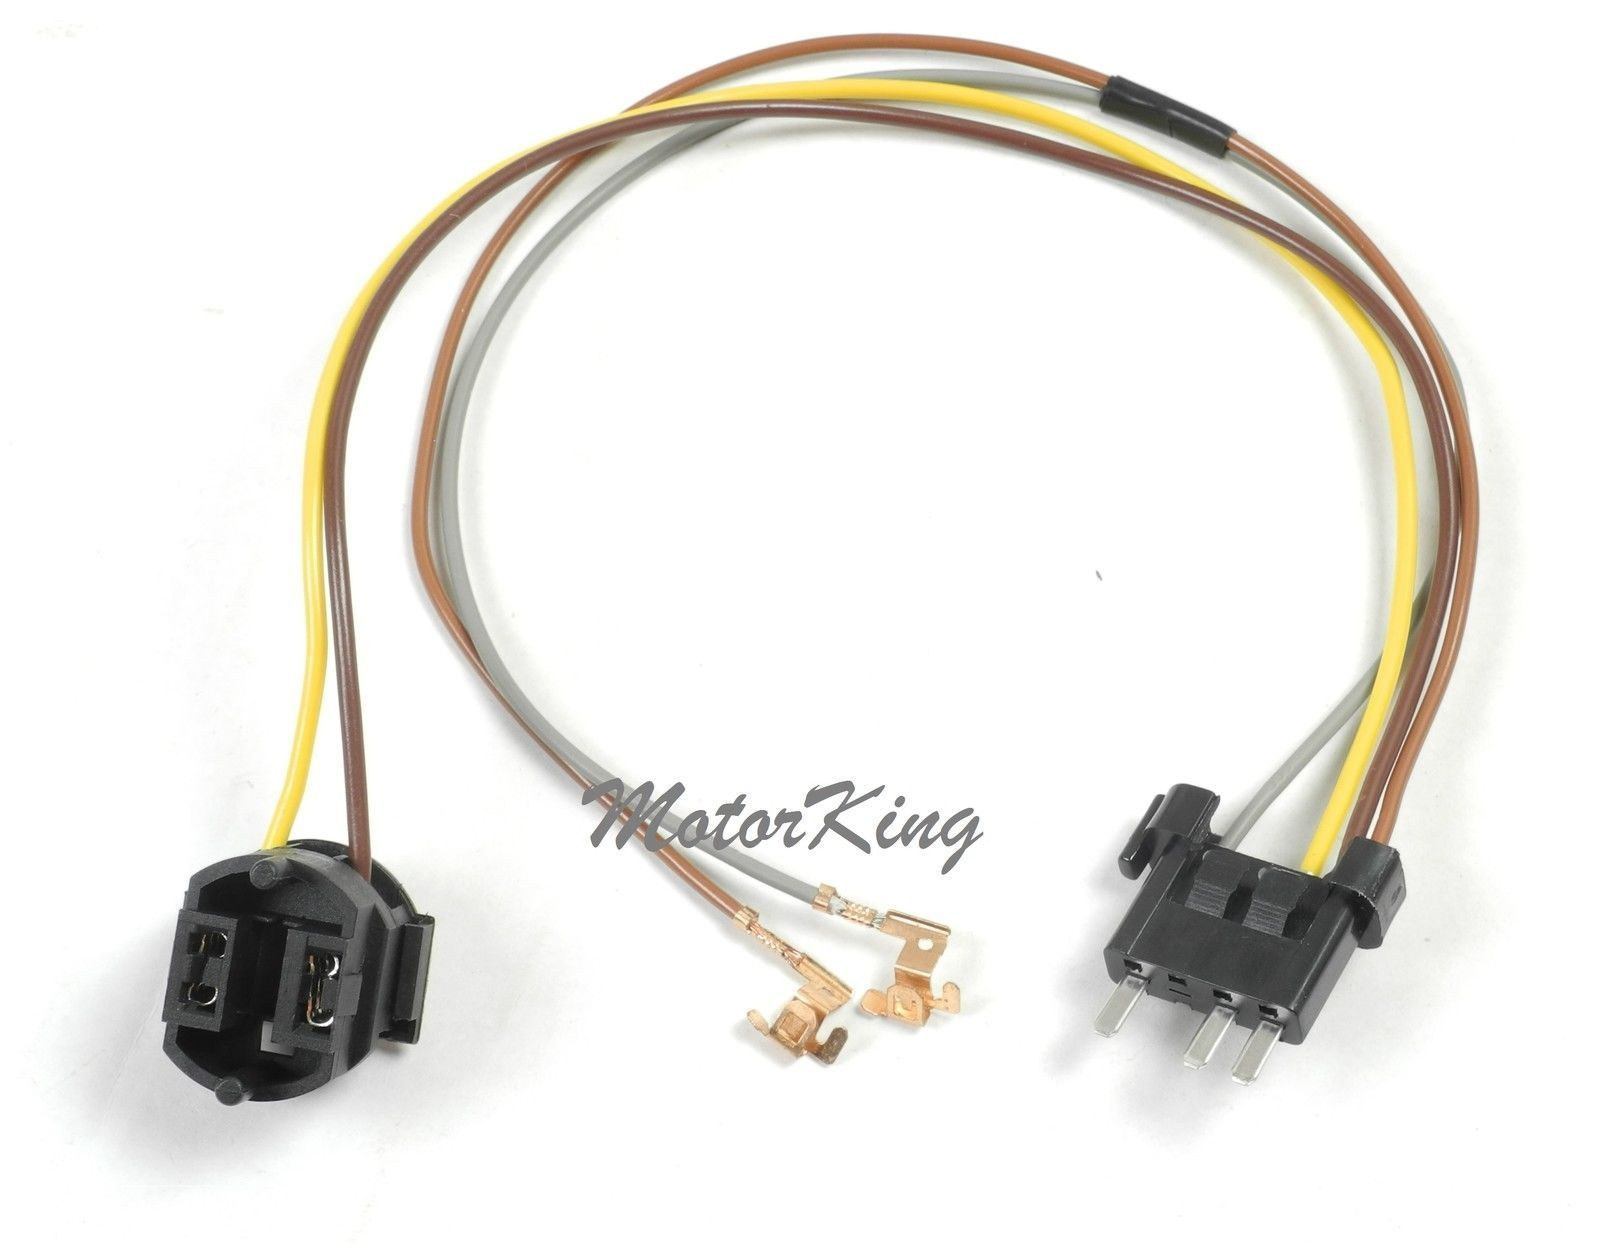 0307 For Mercedes E280 E300 E320 E550 W211 Headlight Wiring Harness